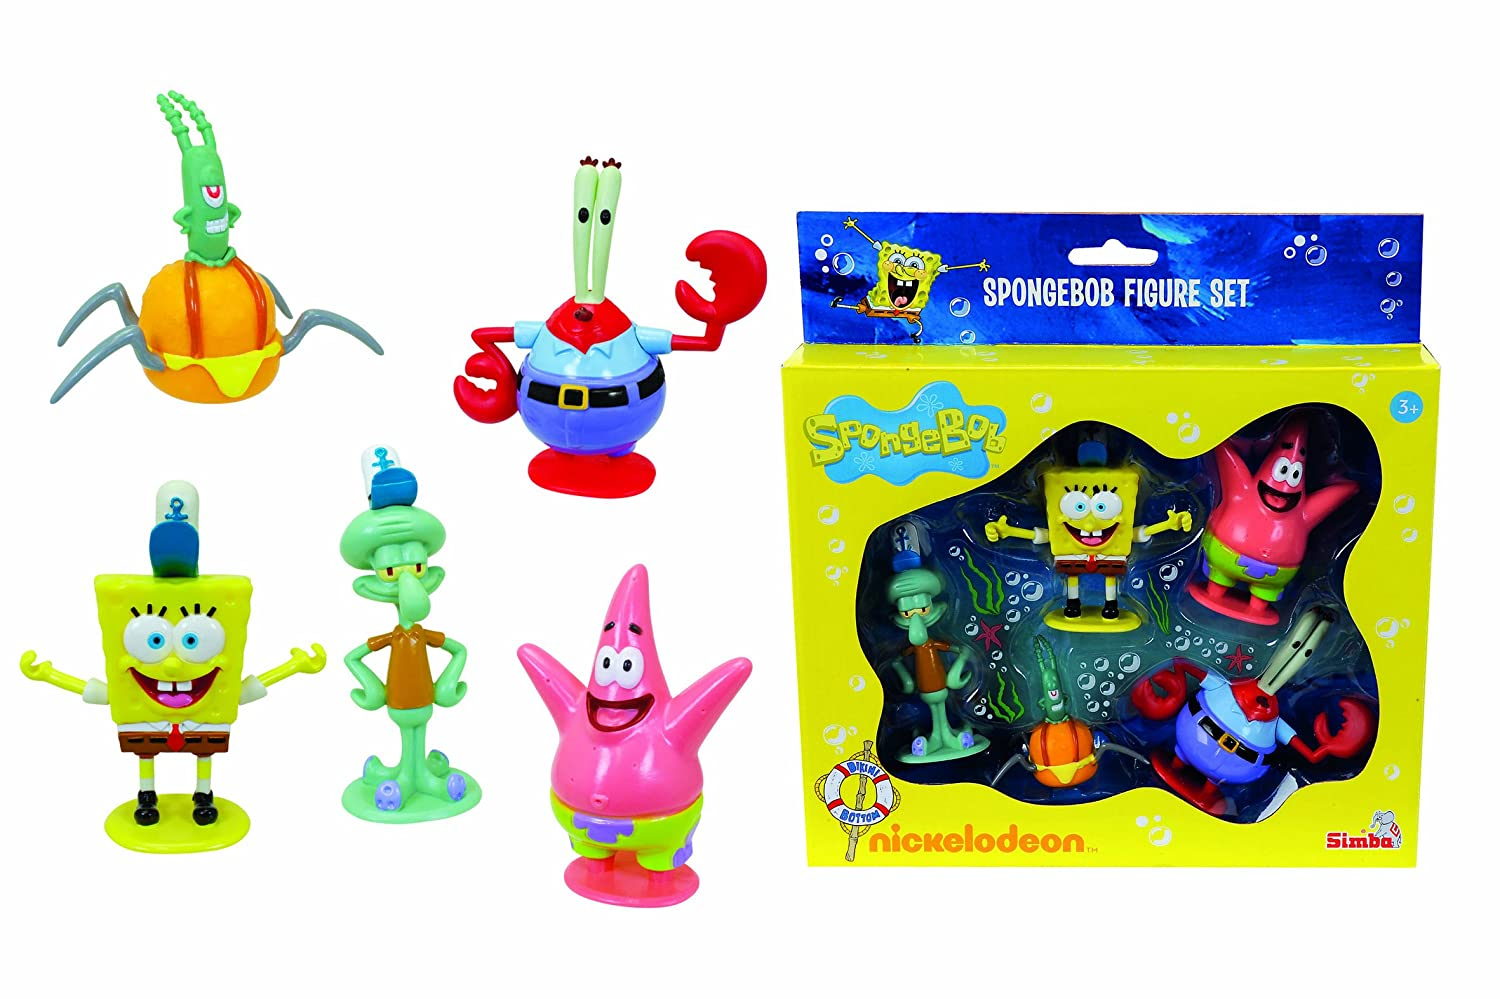 amazon com spongebob squarepants 5 figure playset spongebob